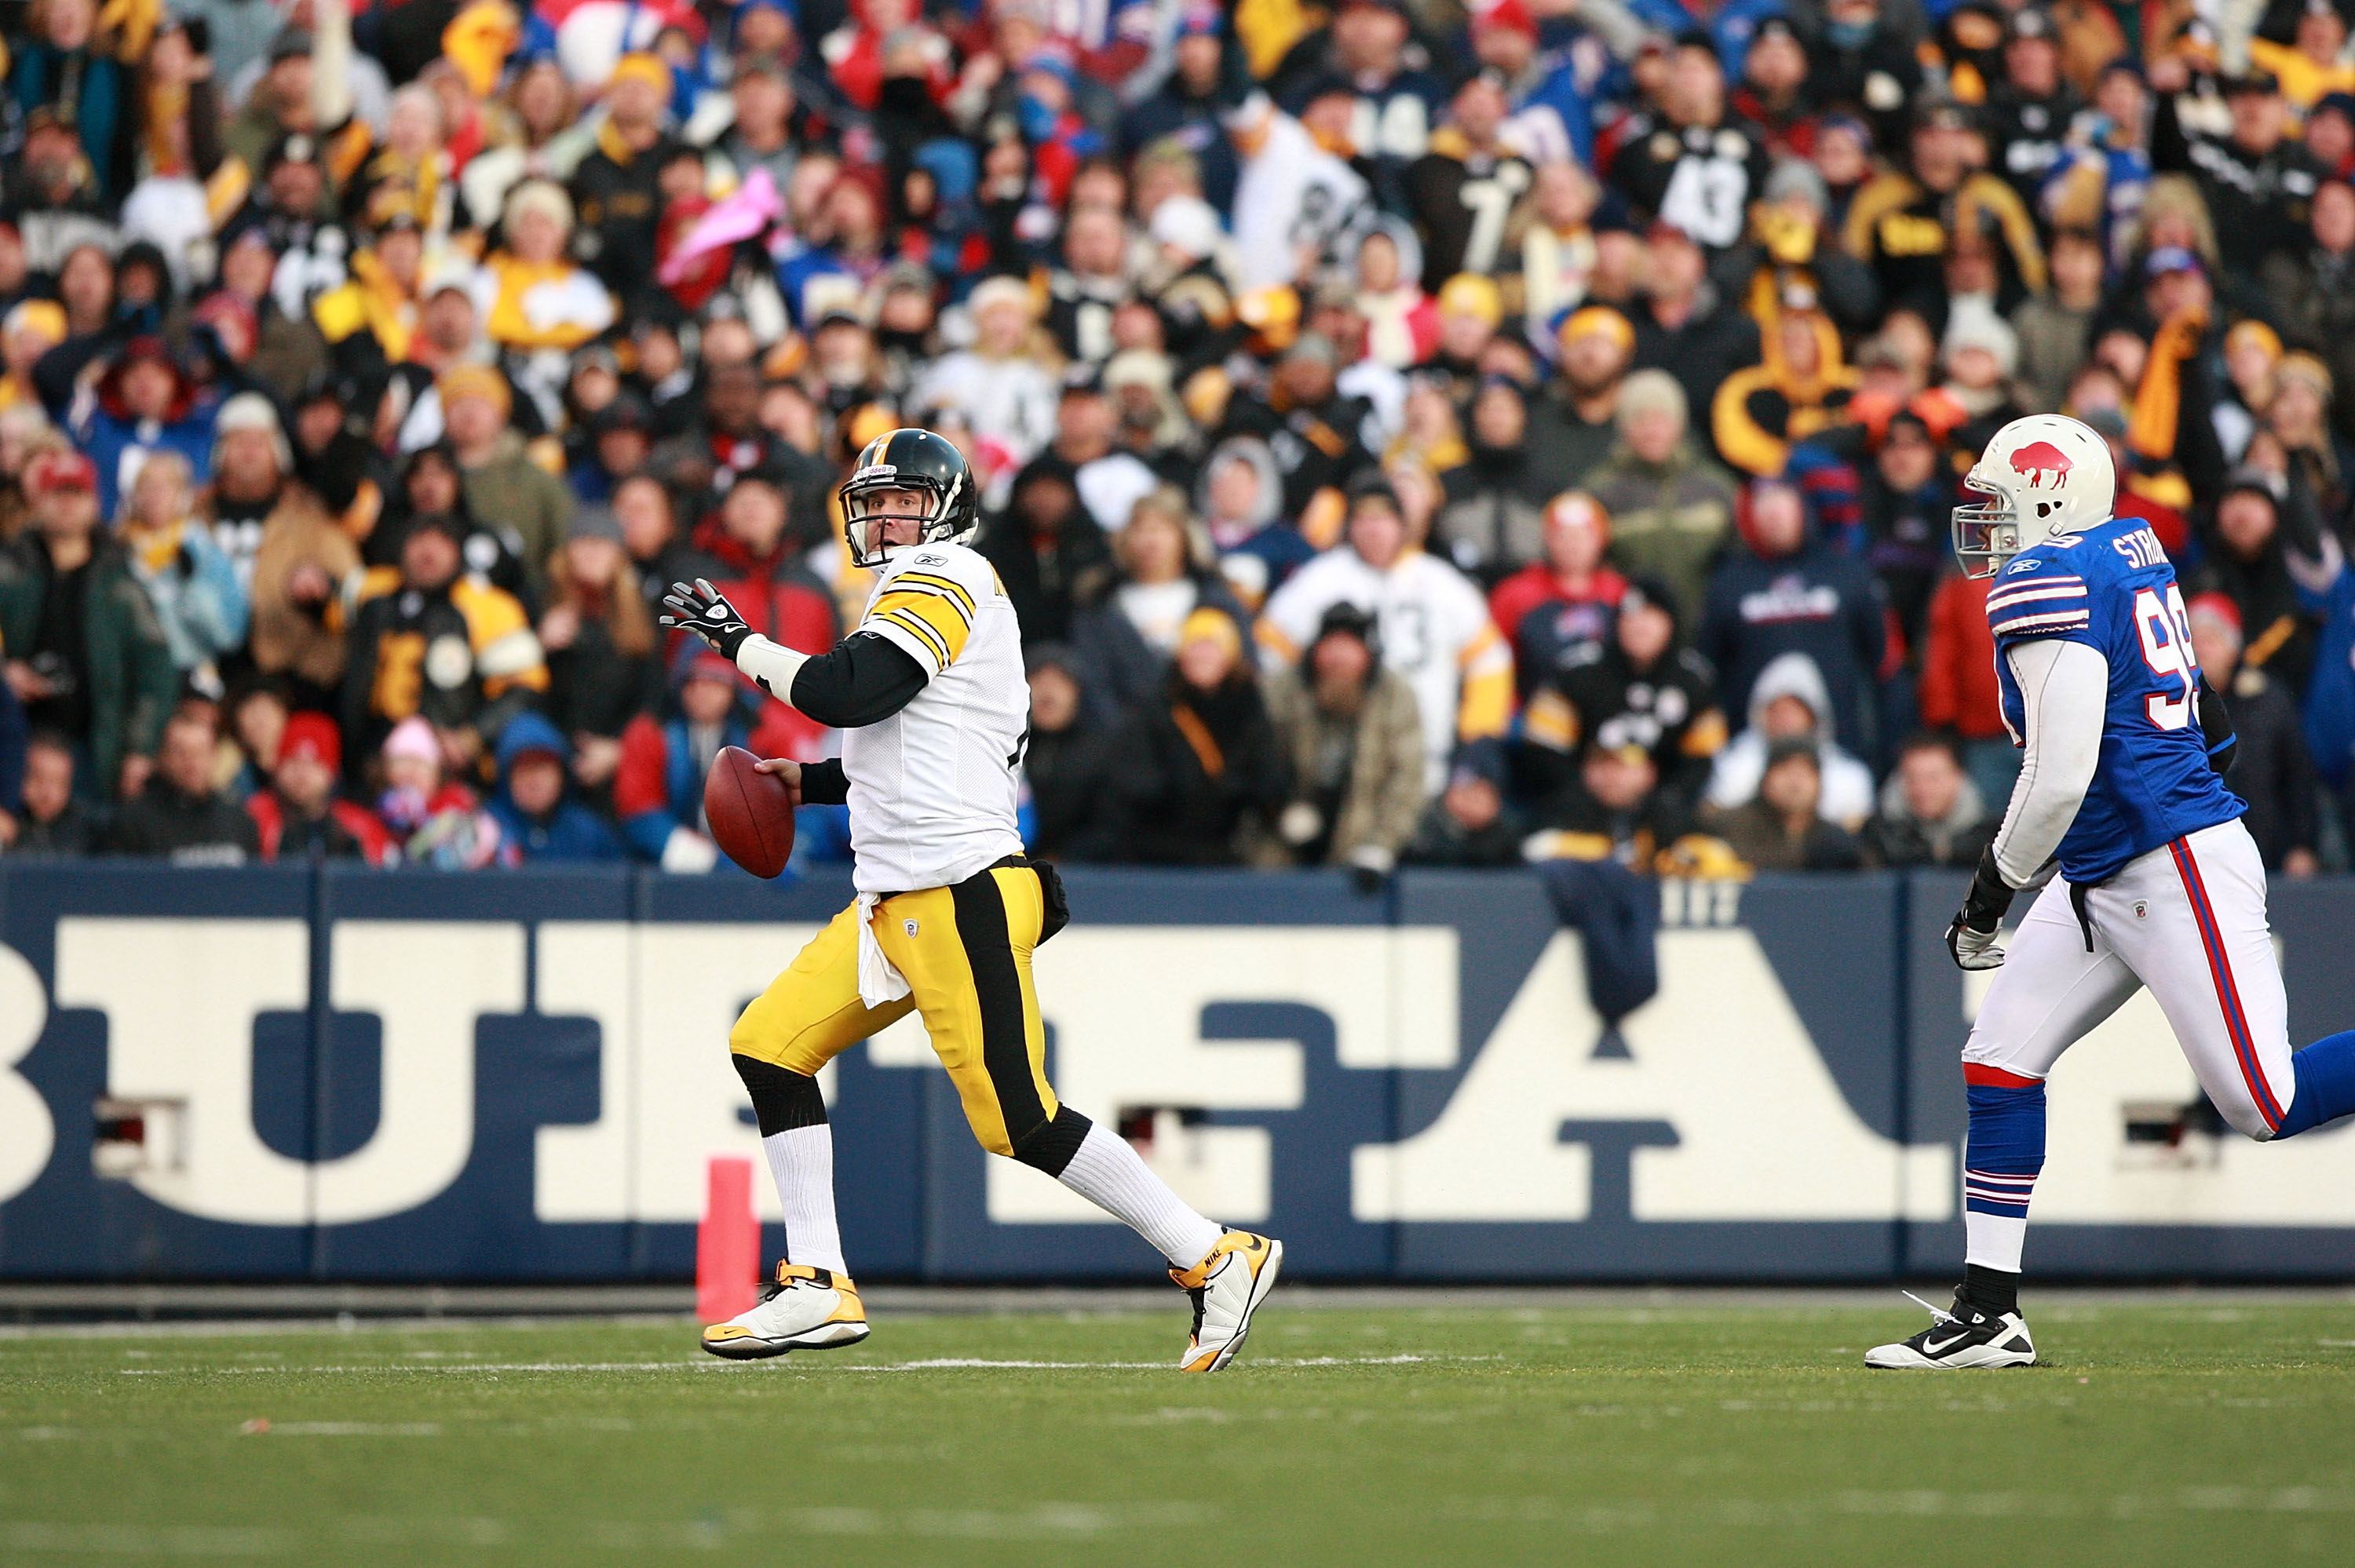 ORCHARD PARK, NY - NOVEMBER 28:  Ben Roethlisberger #7 of the Pittsburgh Steelers scrambles during the game against the Buffalo Bills at Ralph Wilson Stadium on November 28, 2010 in Orchard Park, New York.  (Photo by Karl Walter/Getty Images)